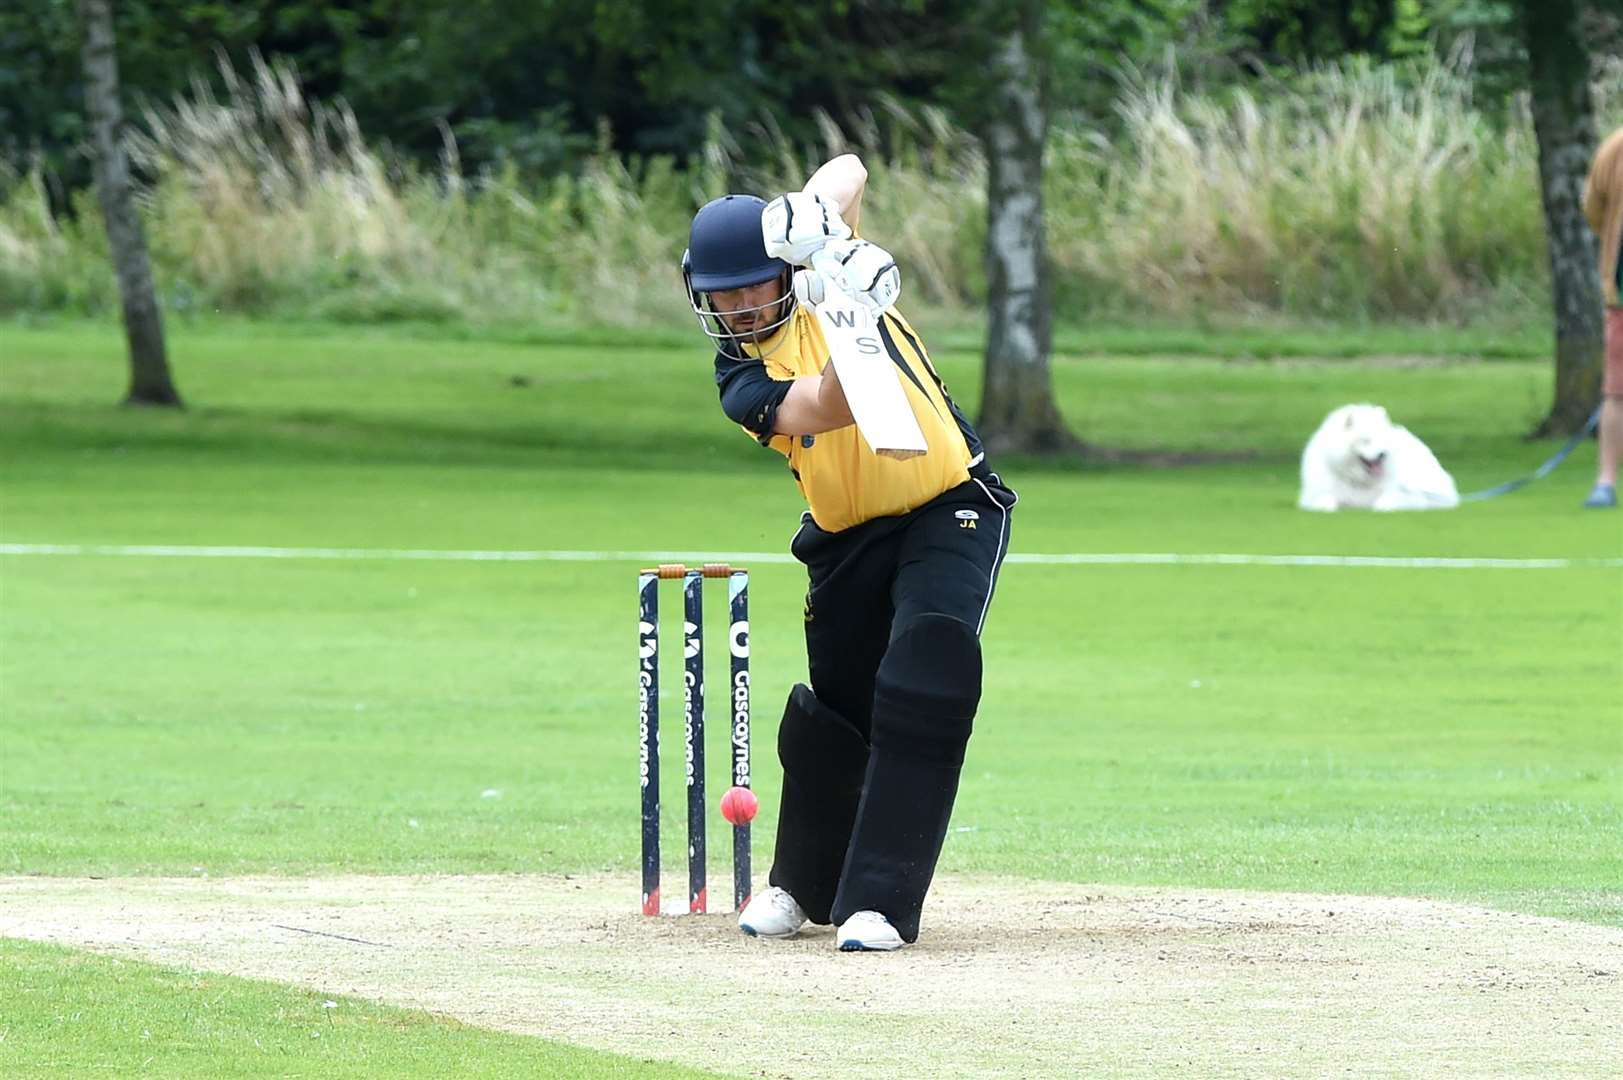 CRICKET - Mildenhall batting (M) v Sawston & Babraham fielding (S)..Pictured: Jack Potticary batting (M)...PICTURE: Mecha Morton..... (38778663)